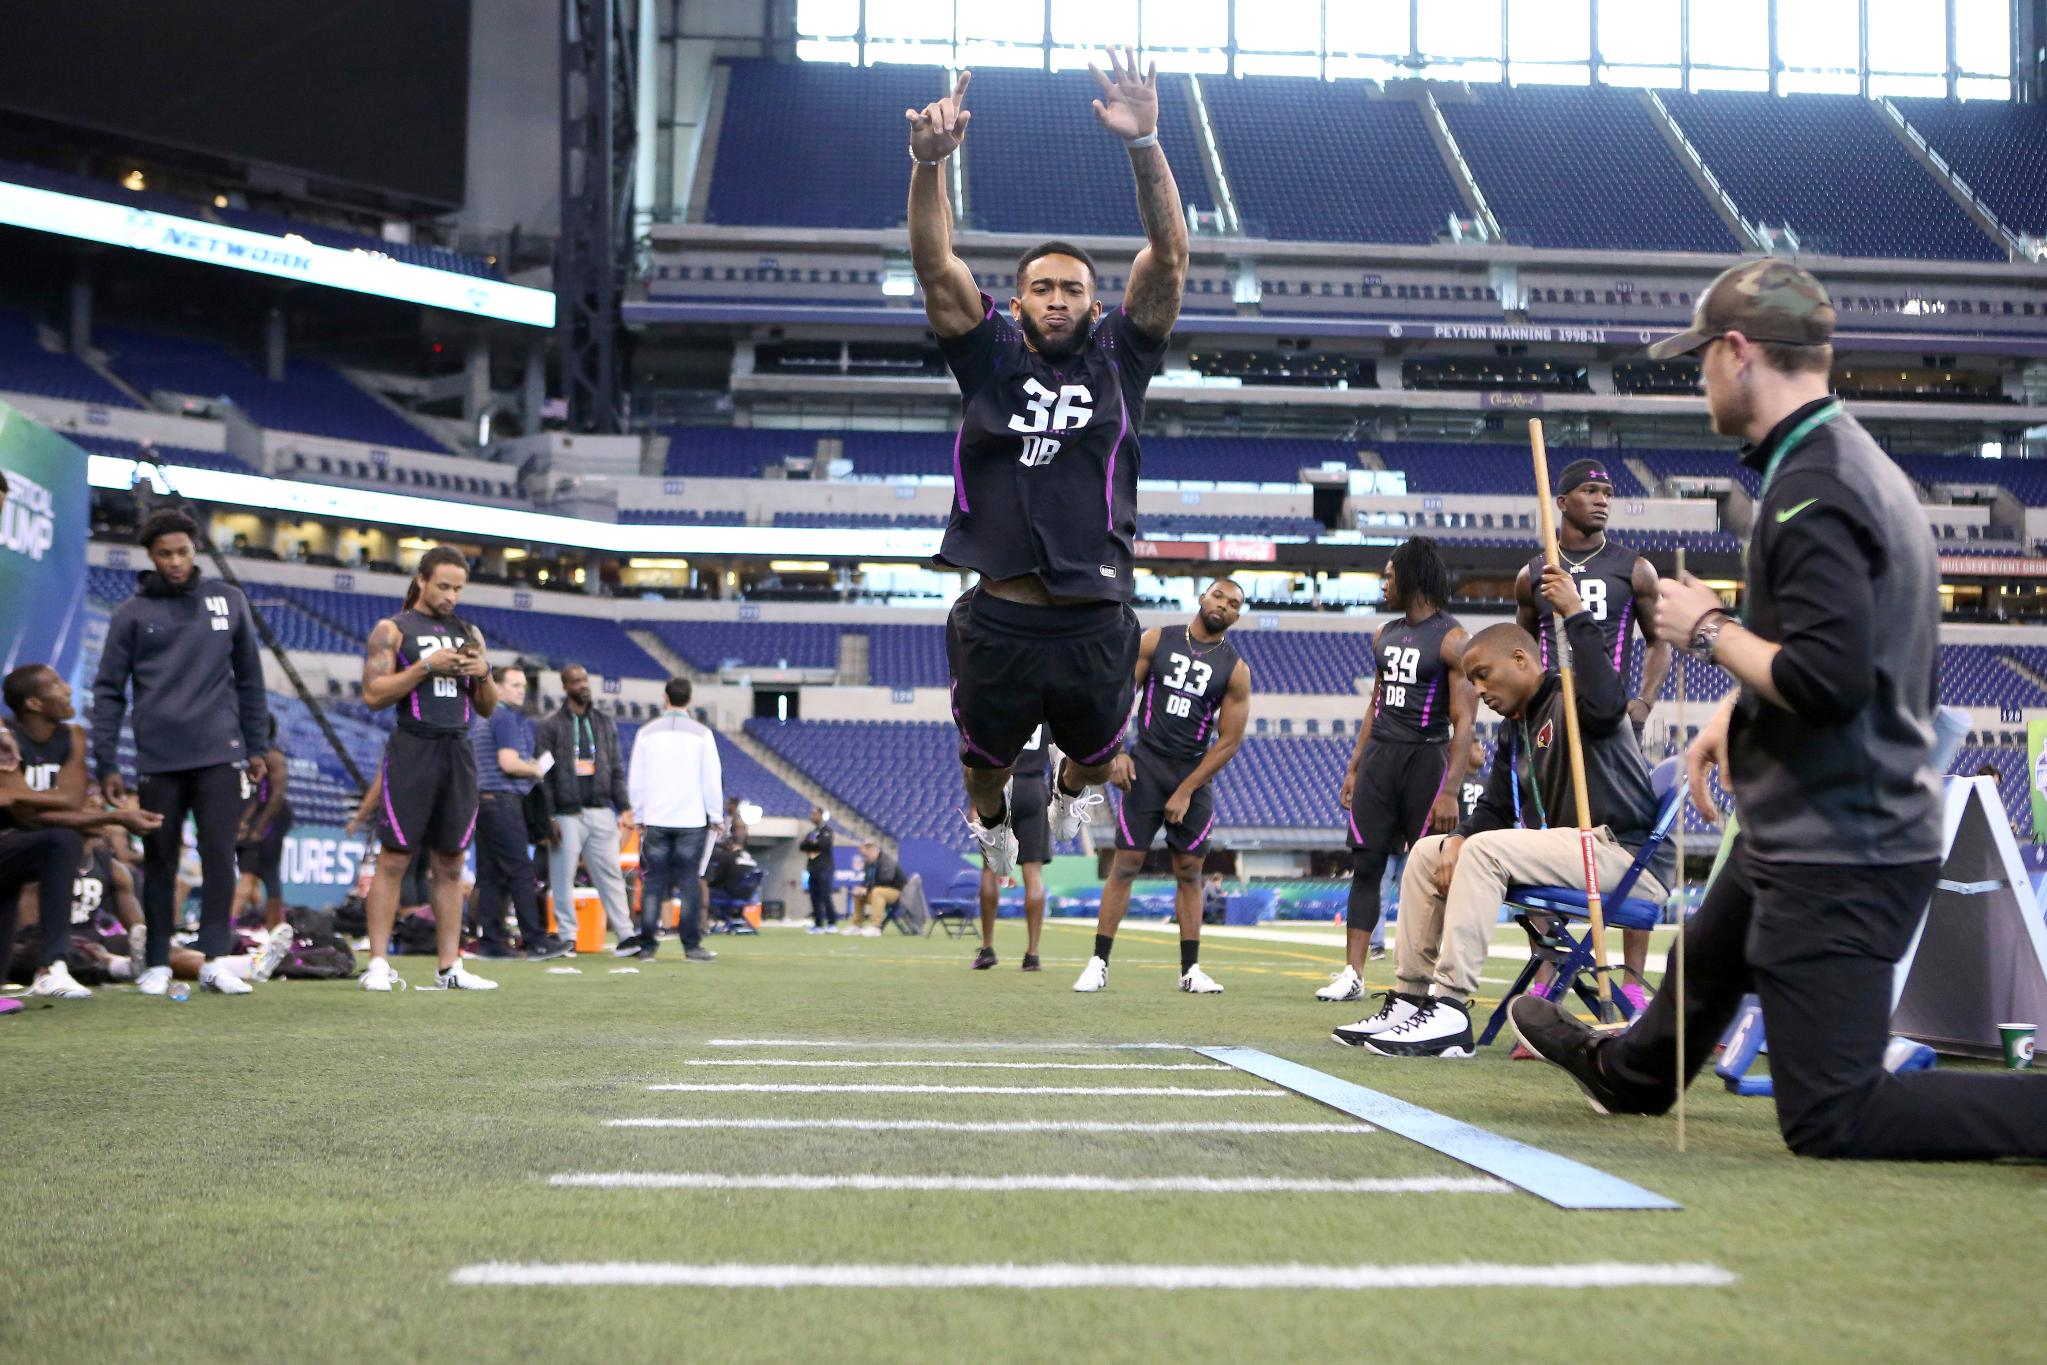 A look back at the #NFLCombine: DL, LB & DB workouts  Photos ��: https://t.co/cDY8qBR56U https://t.co/ANjNffop0U